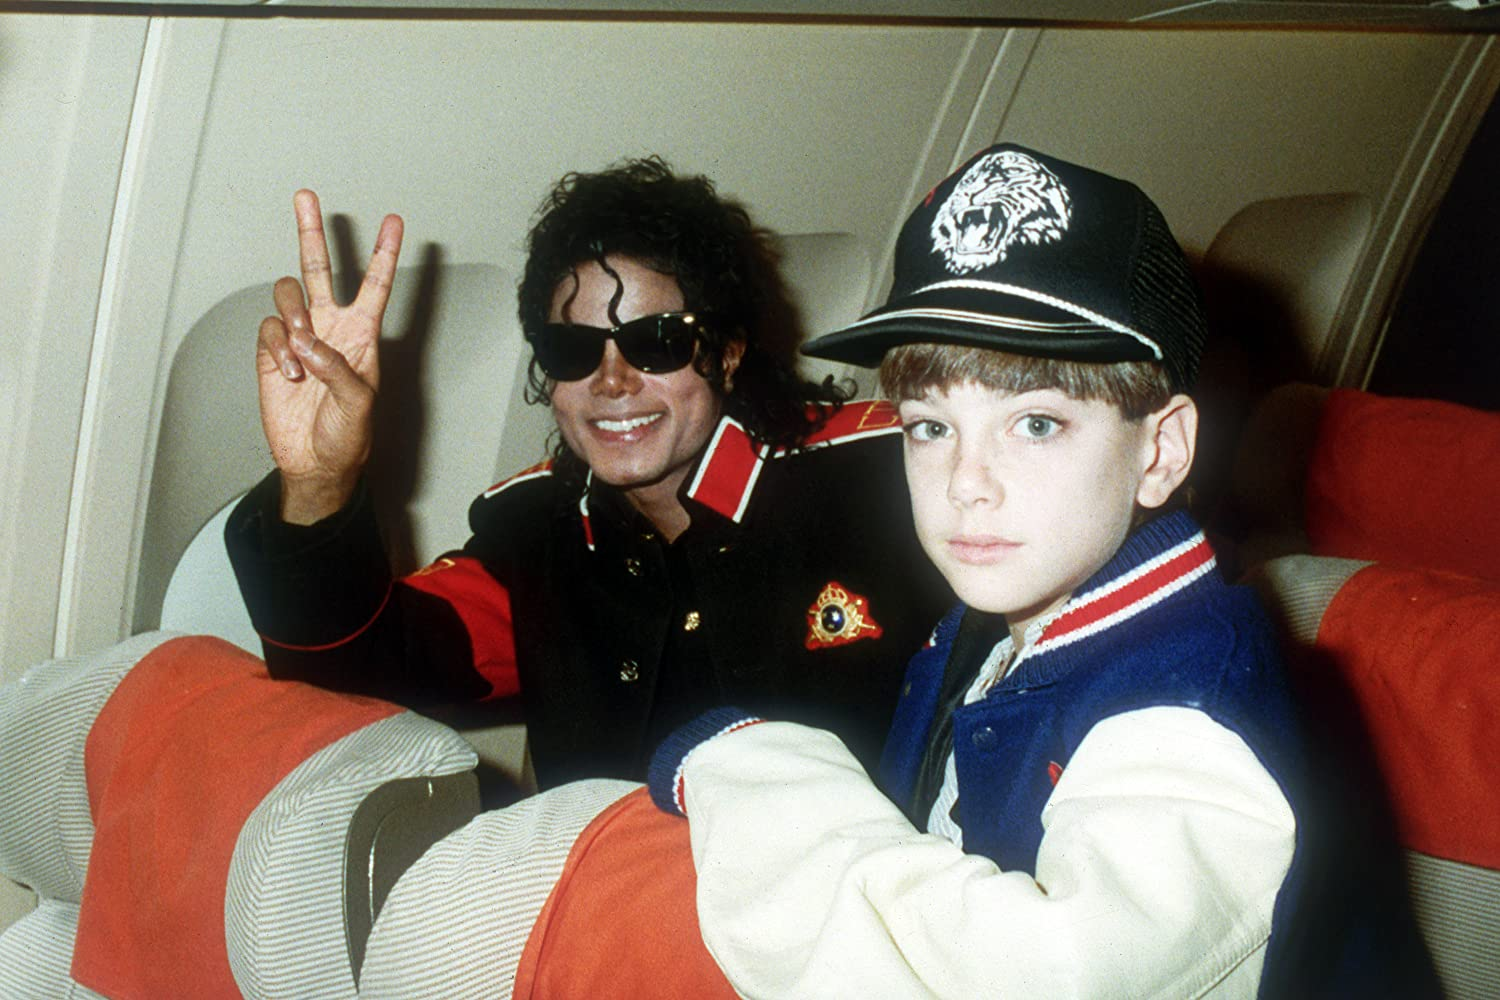 Michael Jackson and Jimmy Safechuck in Leaving Neverland (2019)